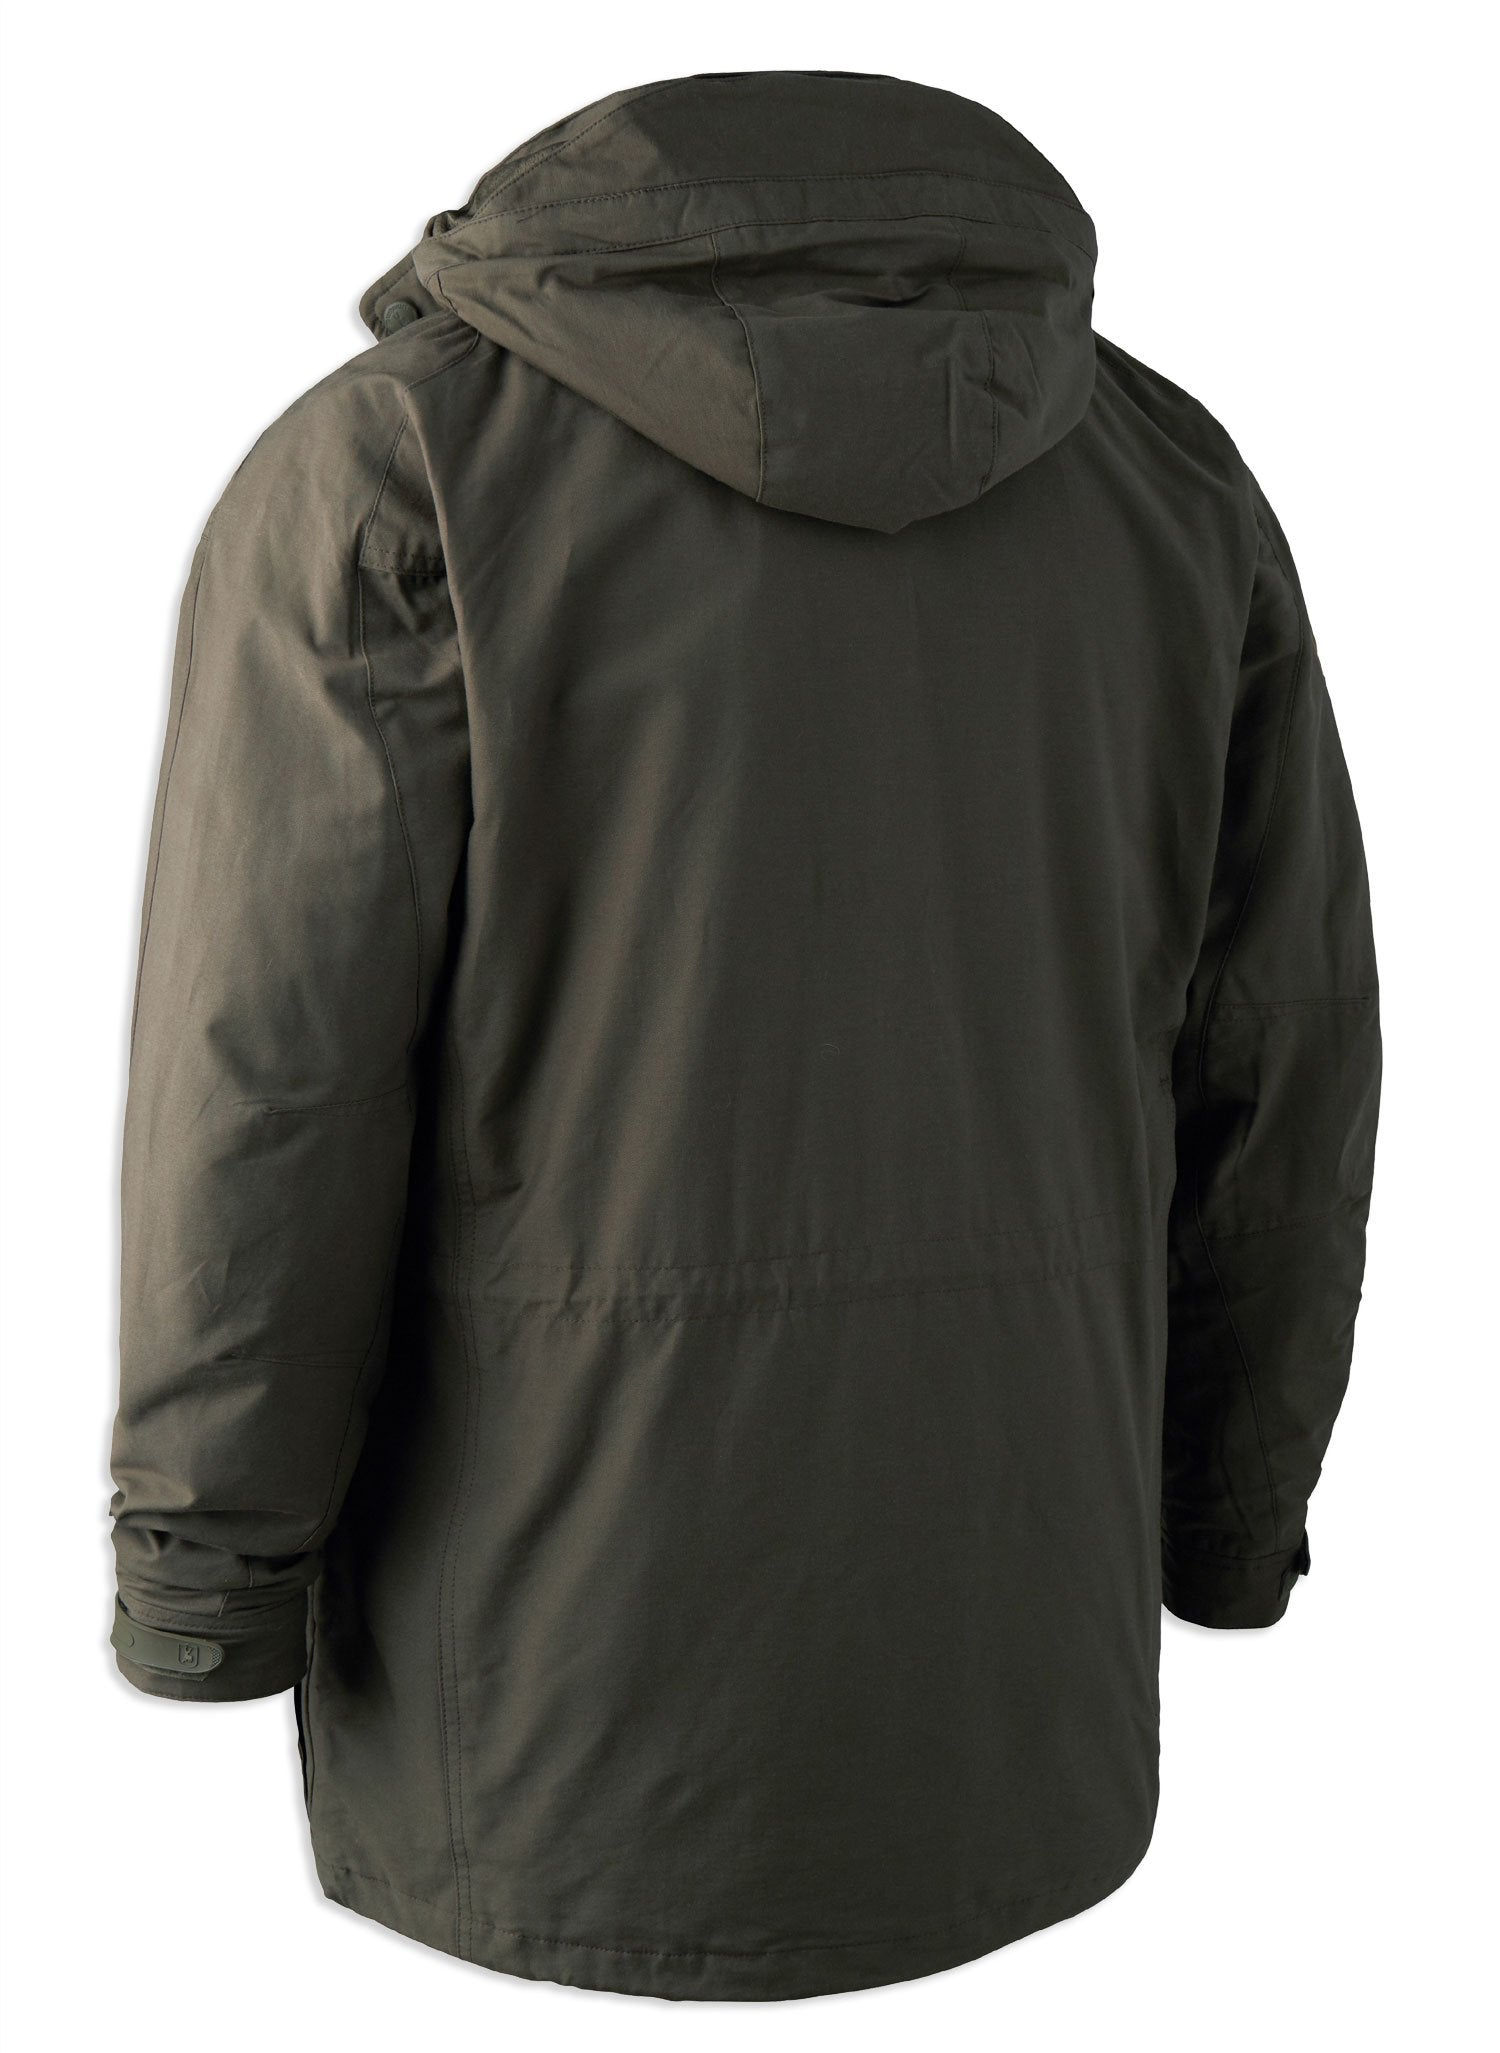 Back View Deerhunter Upland Jacket | Canteen Green